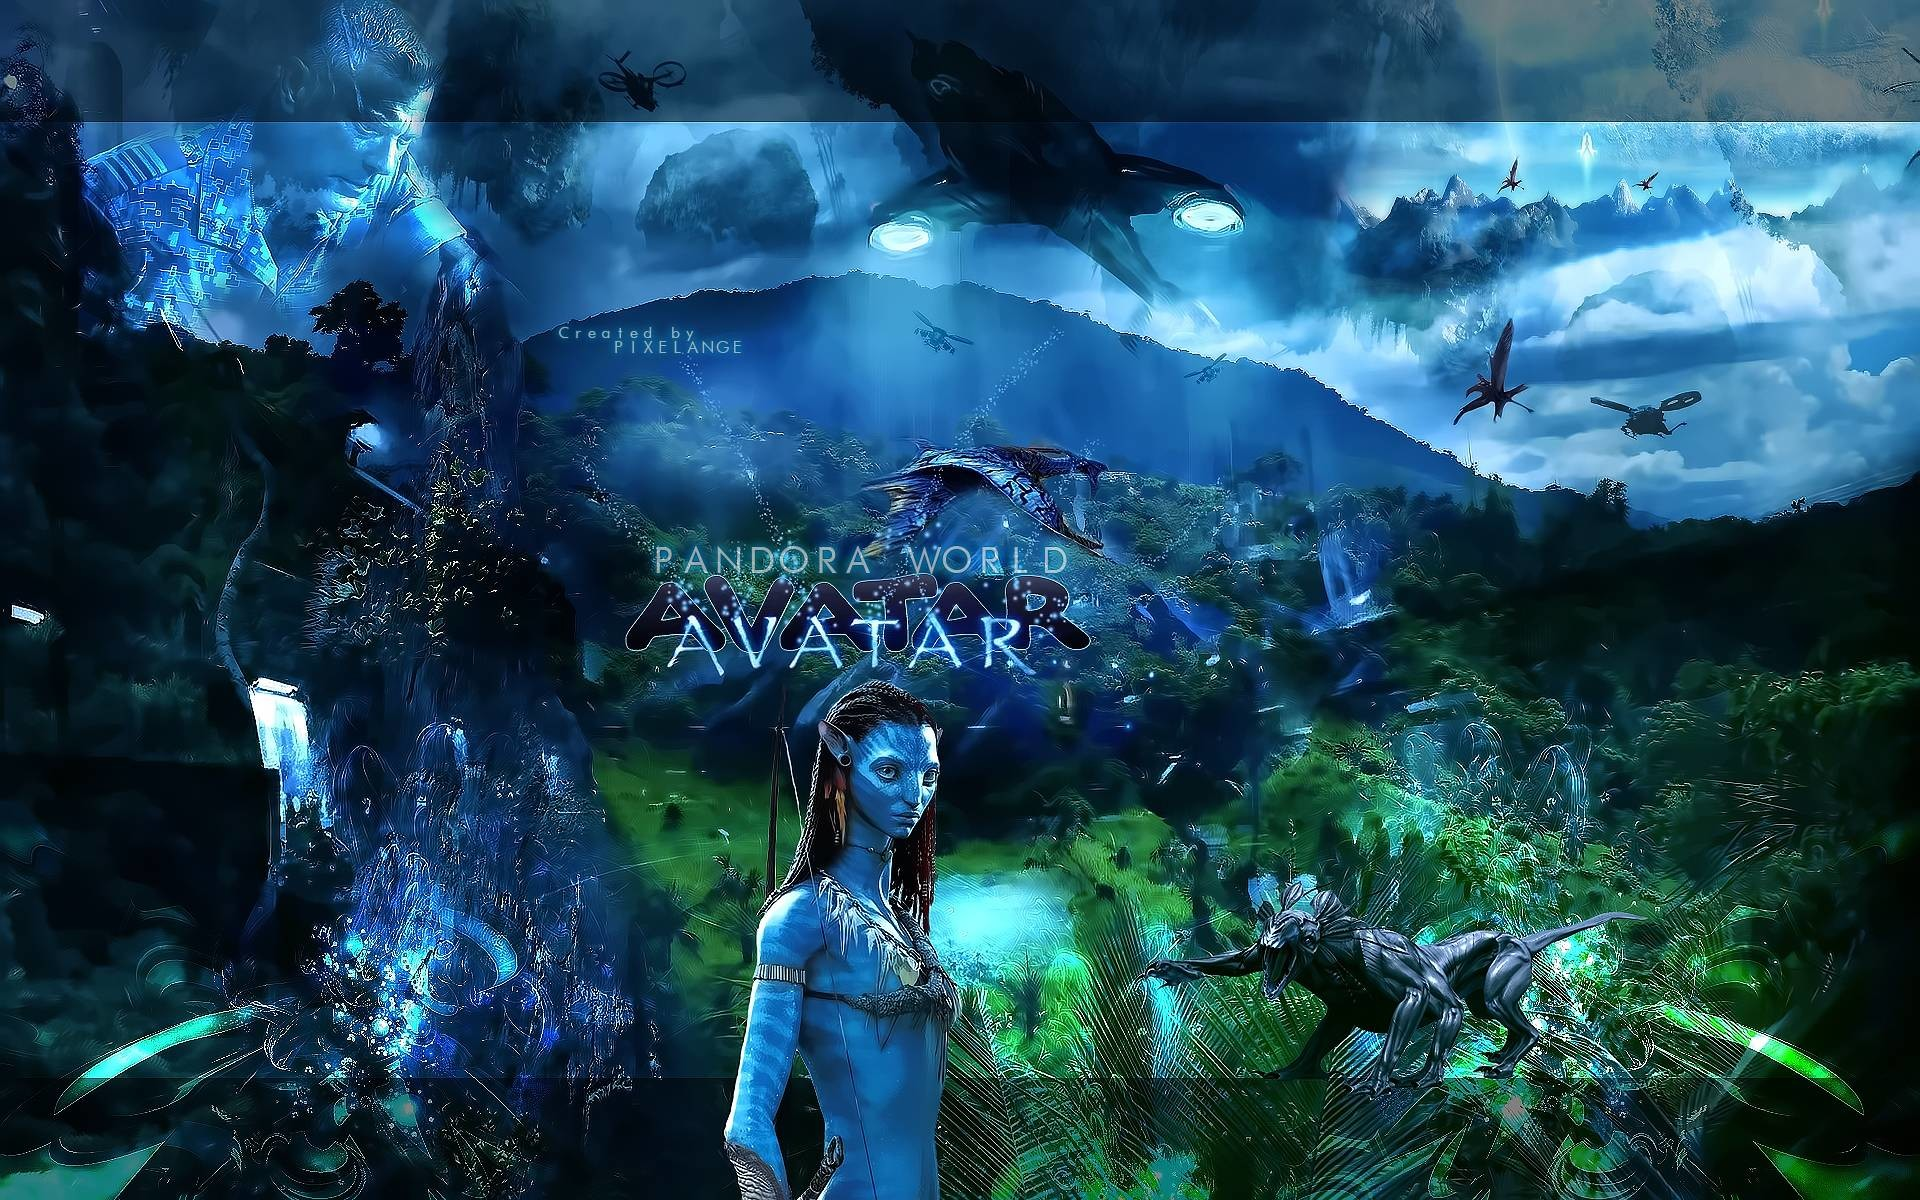 Free Hd Movie Download Point Avatar 2009 Free Hd Movie: Avatar Wallpapers (80+ Images